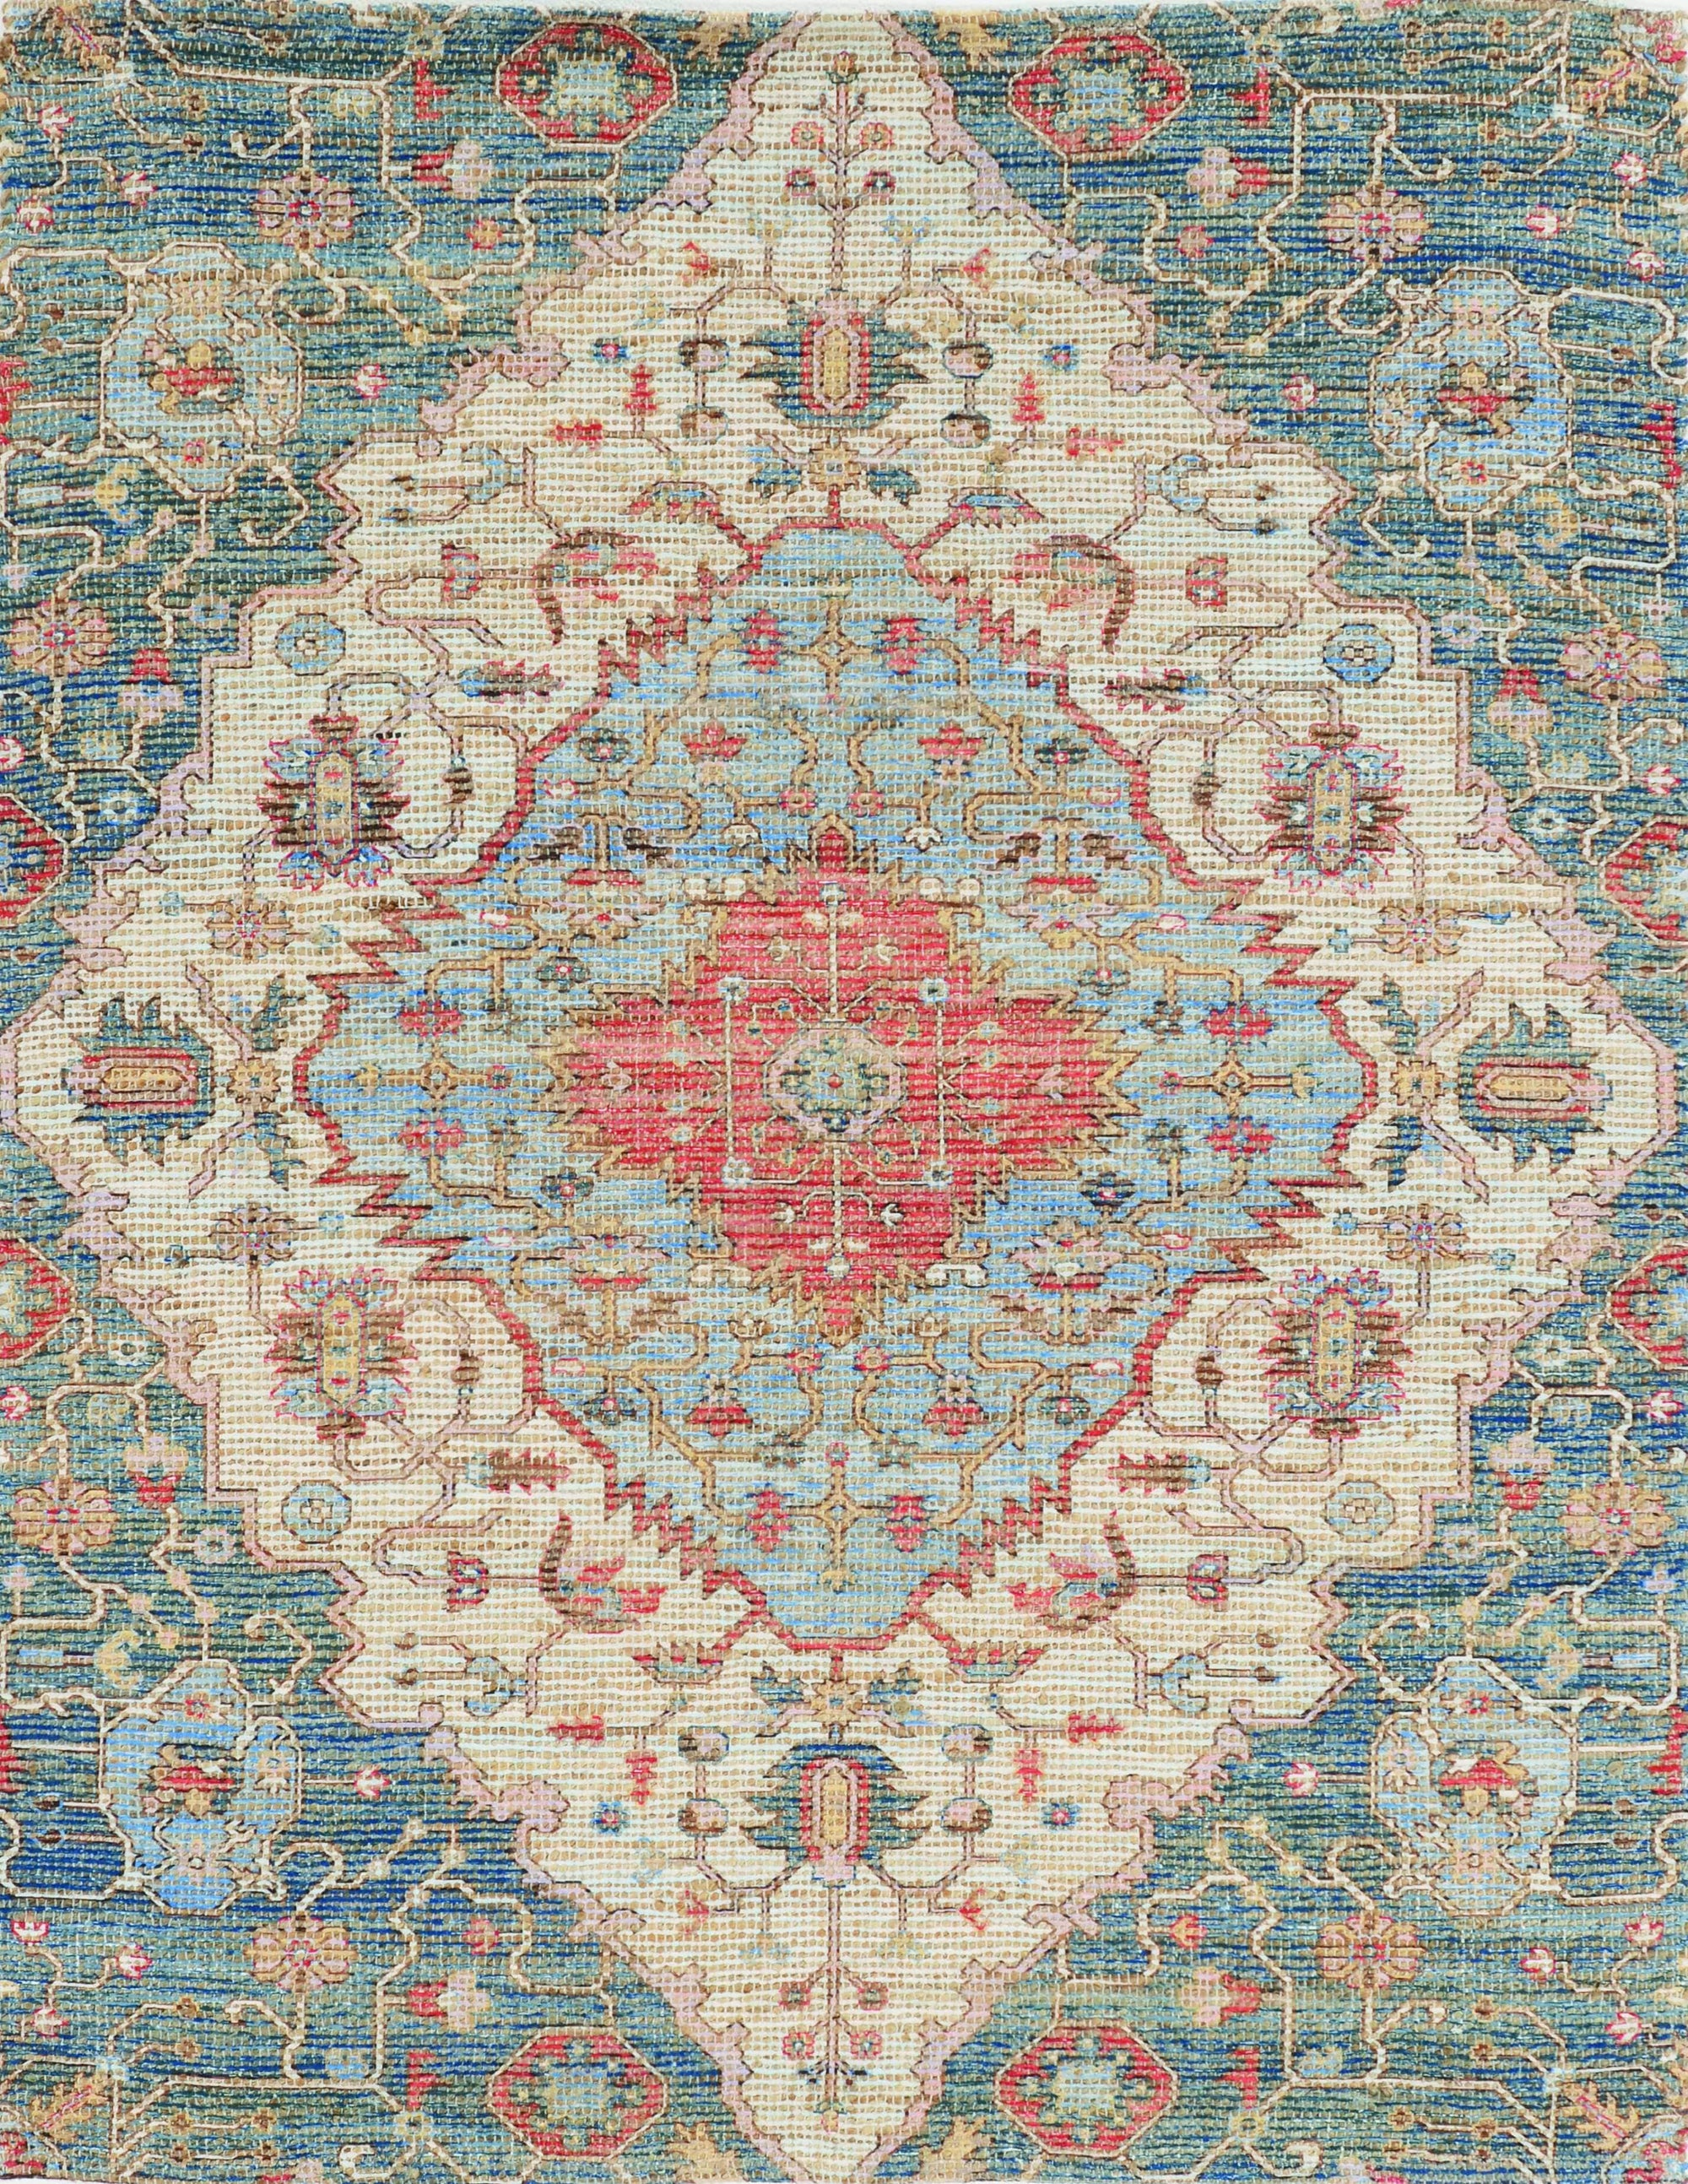 5' x 7' Gramercy Blue Red Area Rug